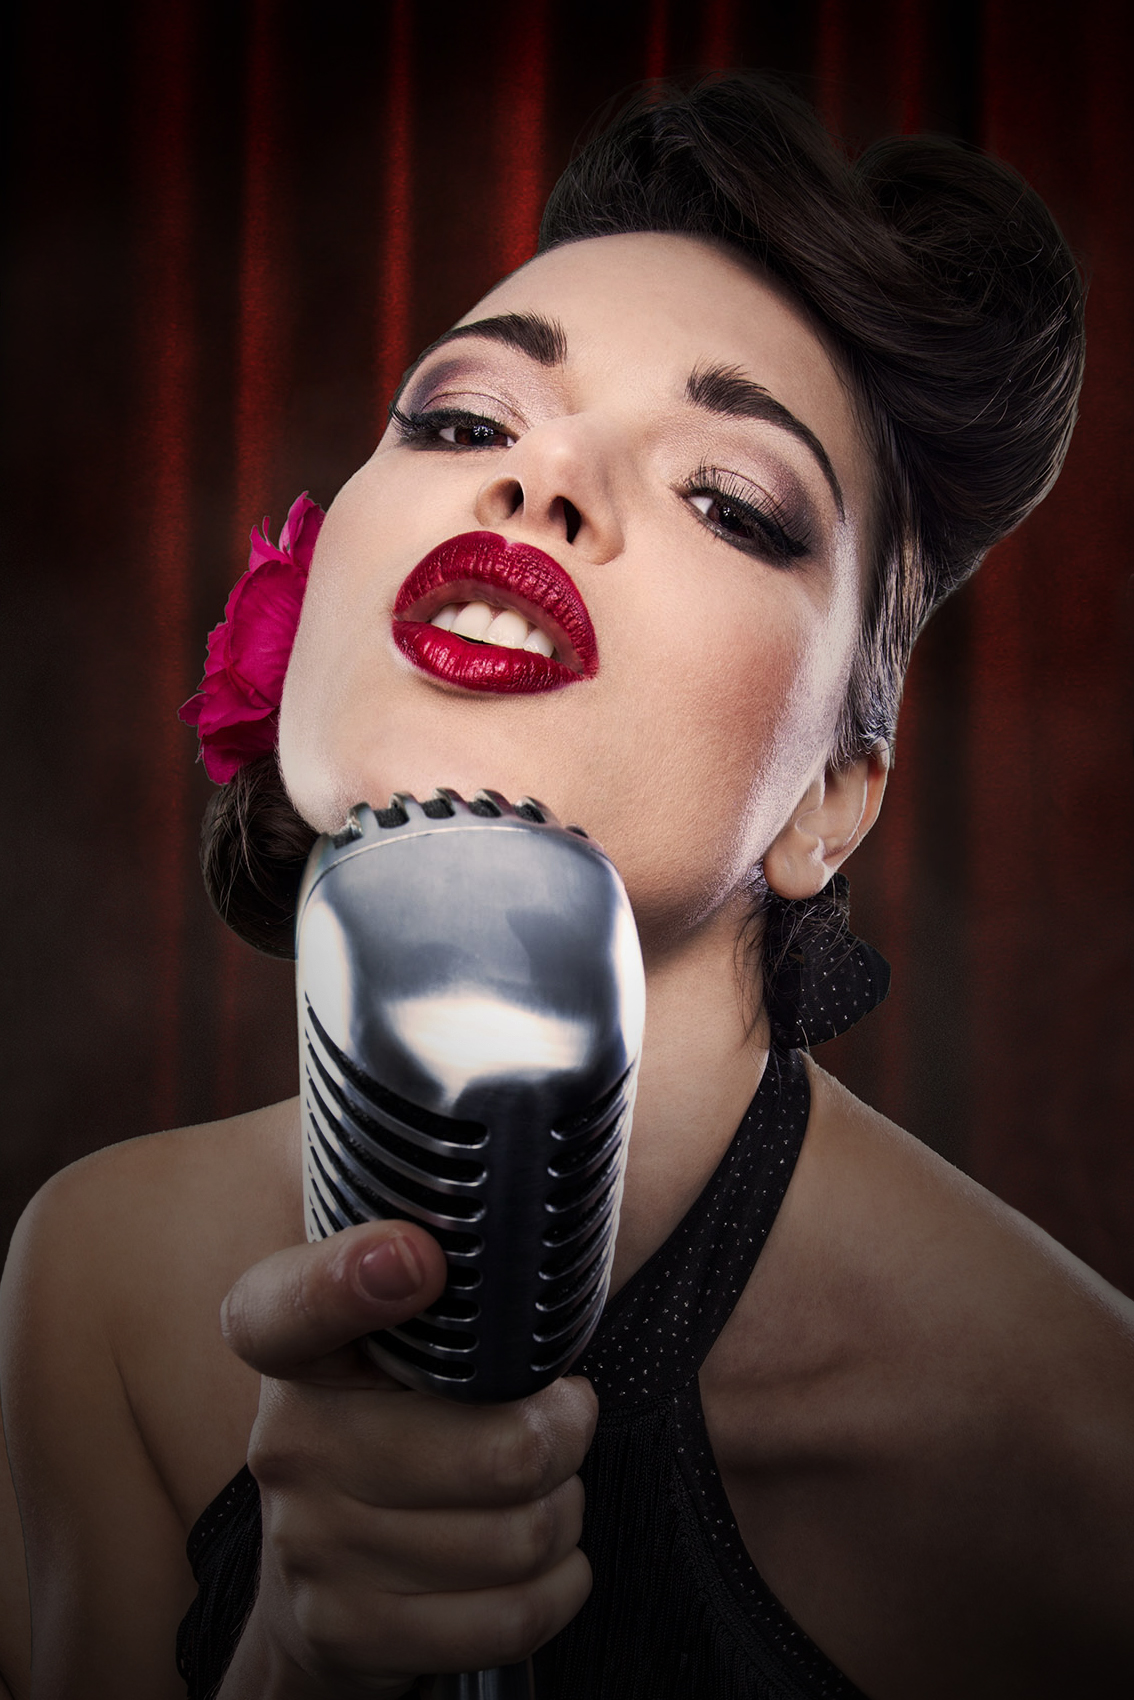 Pinup girl close-up, swing singer, red lipstick